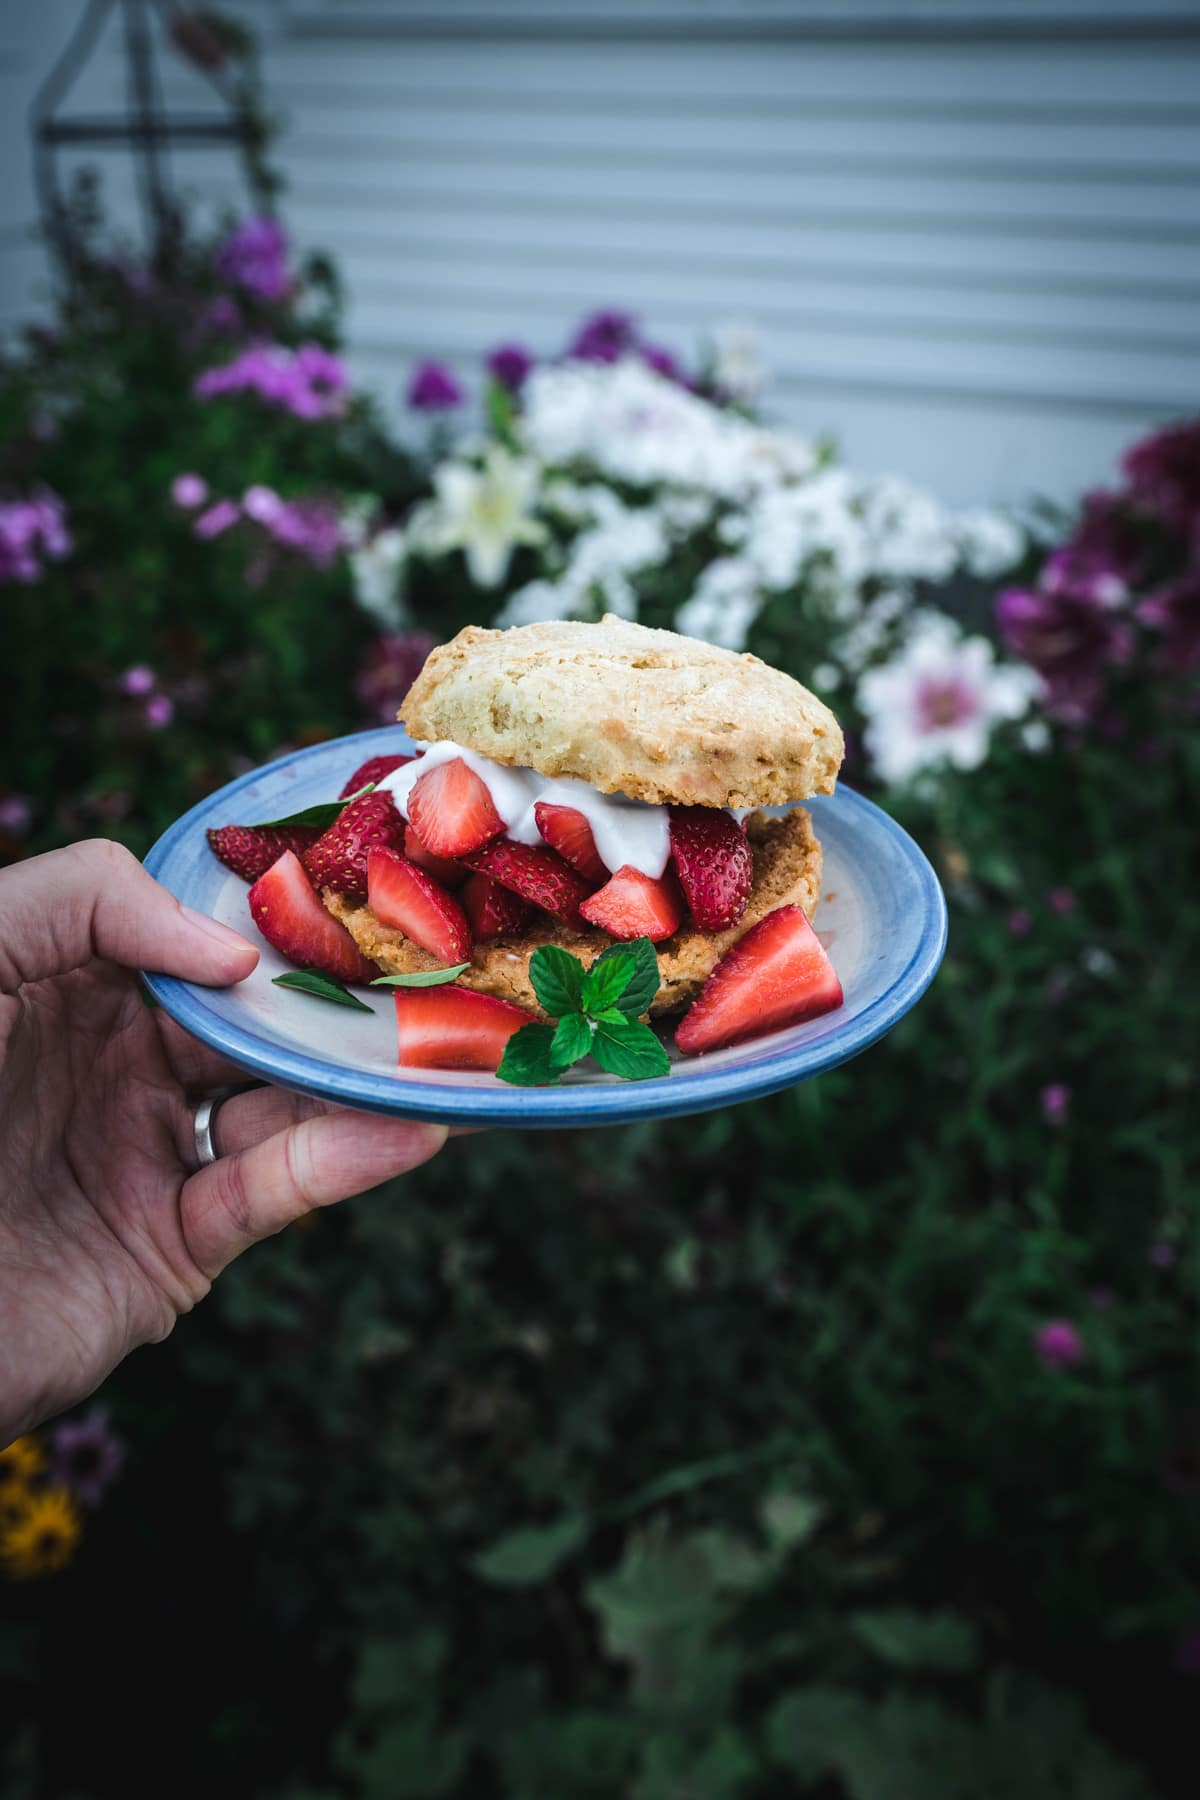 a person holding a plate of a vegan gluten free strawberry shortcake in front of a garden outdoors